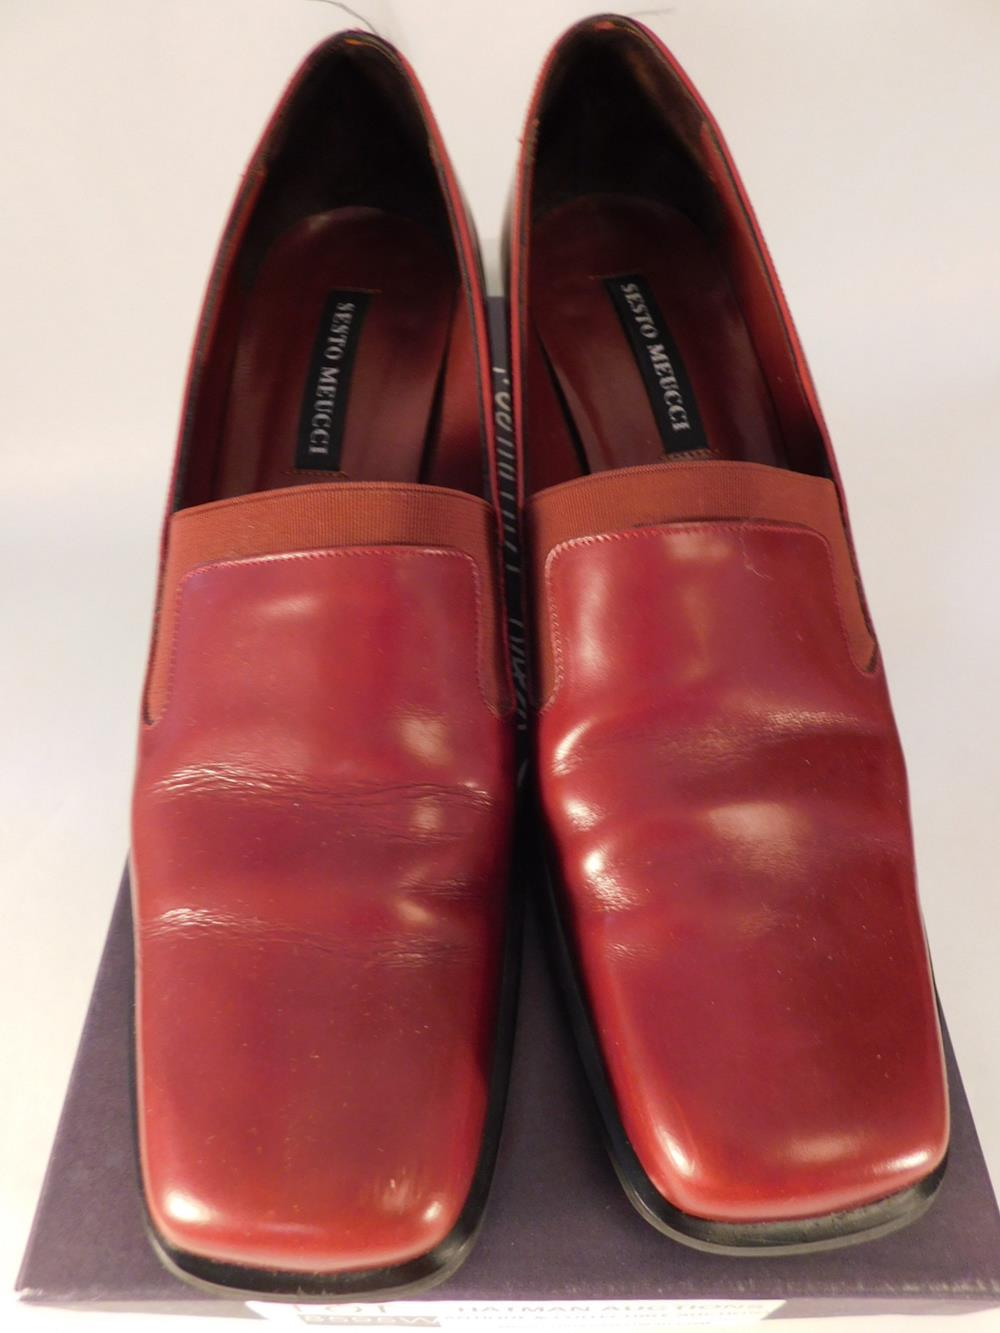 SESTO MEUCCI OF FLORENCE MADE IN ITALY SHOES VIKING RED CALF SIZE 7.5 N WOMENS DRESS SHOE